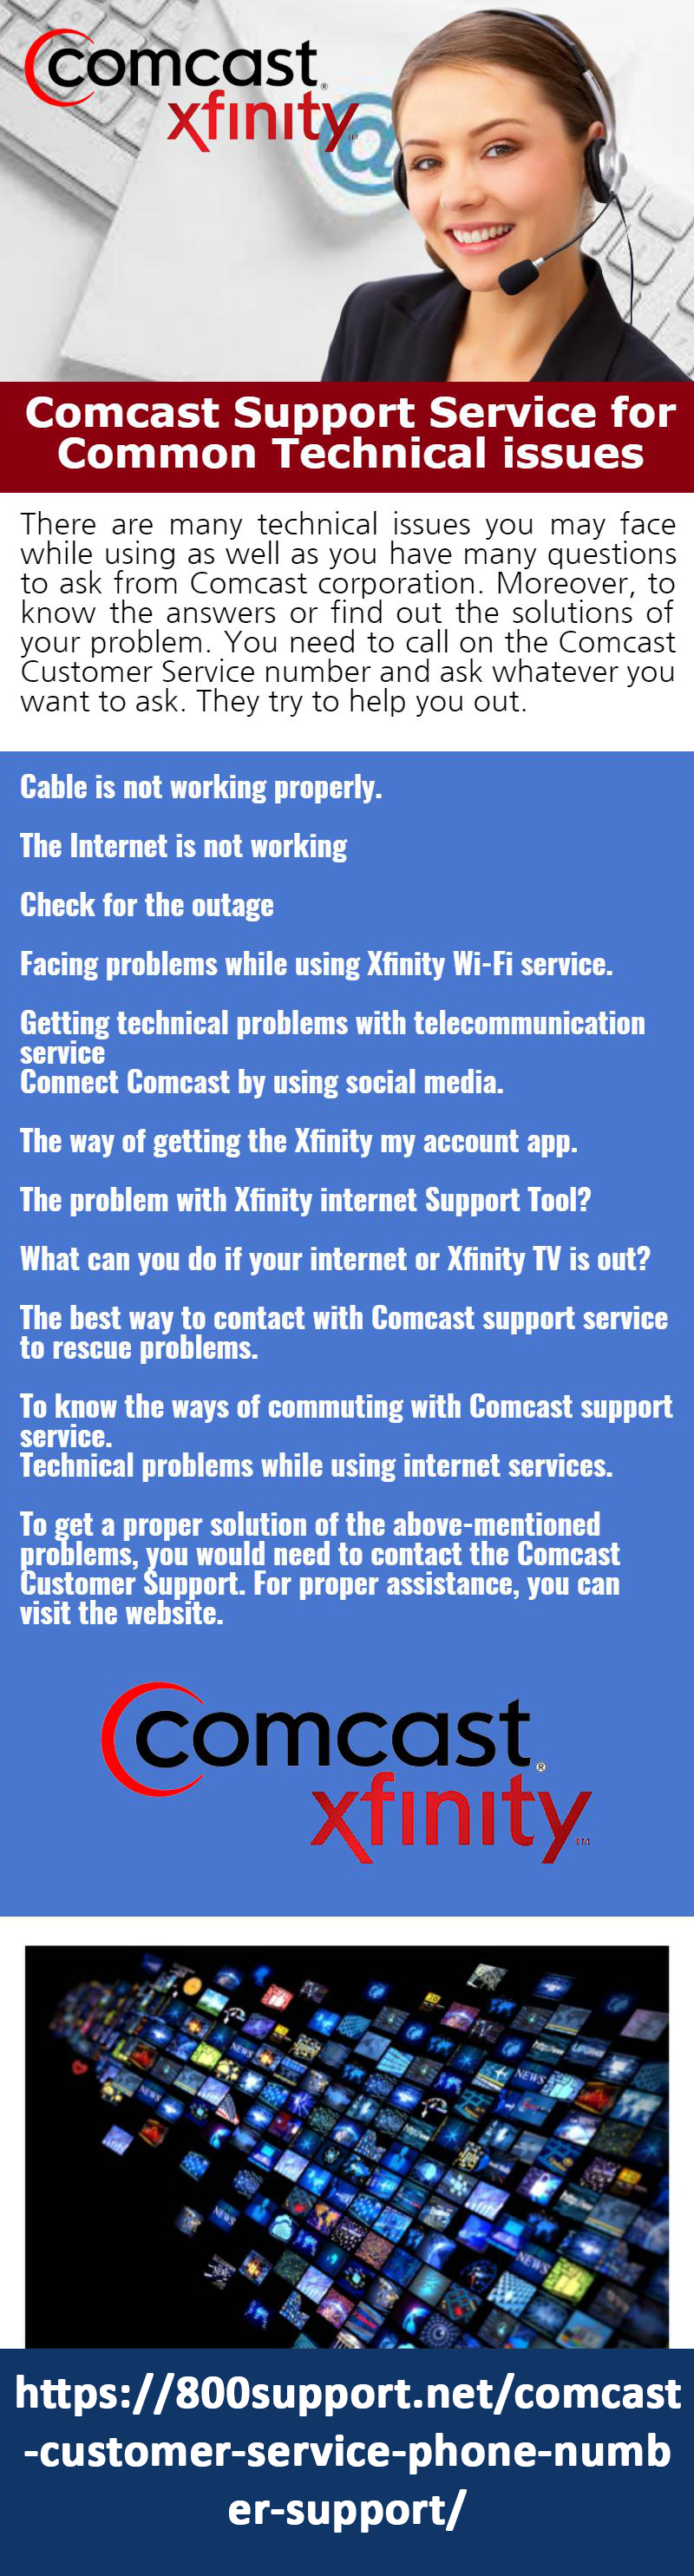 Comcast Is The Name Of The Organization That Has Completely Picked Up Acknowledgment In The Two Divisions Which Is The Bro Comcast Digital Cable Tv Supportive